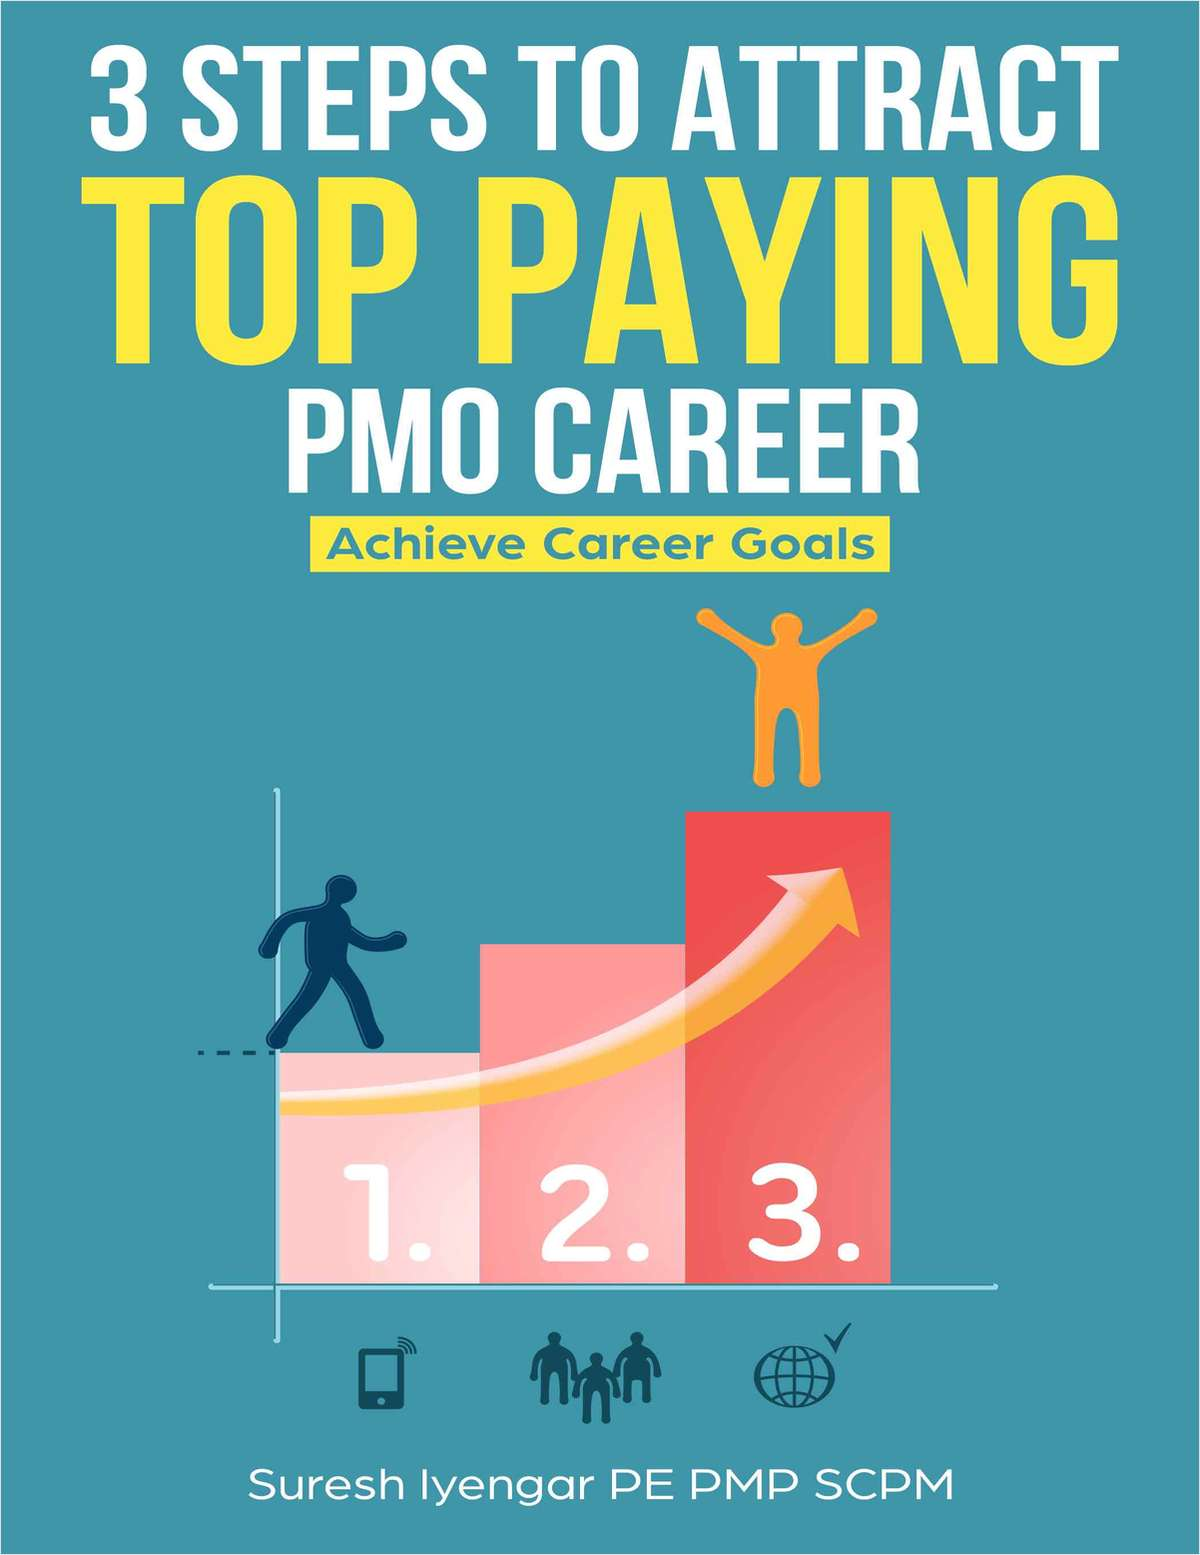 3 Steps to Attract Top Paying PMO Career